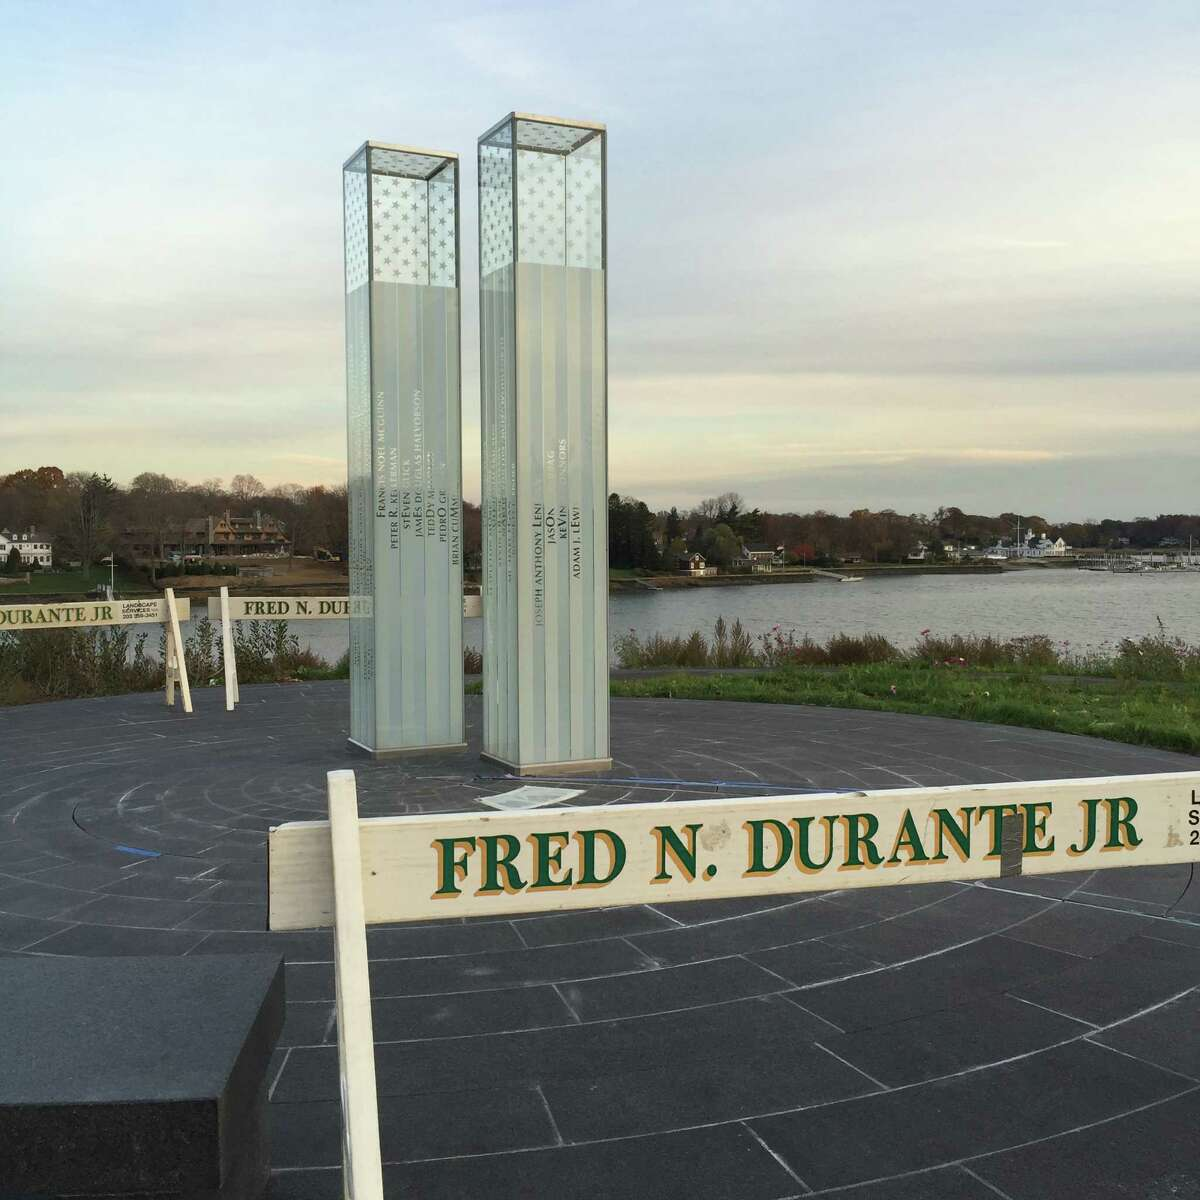 Weather-proofing work at the 9/11 Memorial in Cos Cob will extend into early next week.